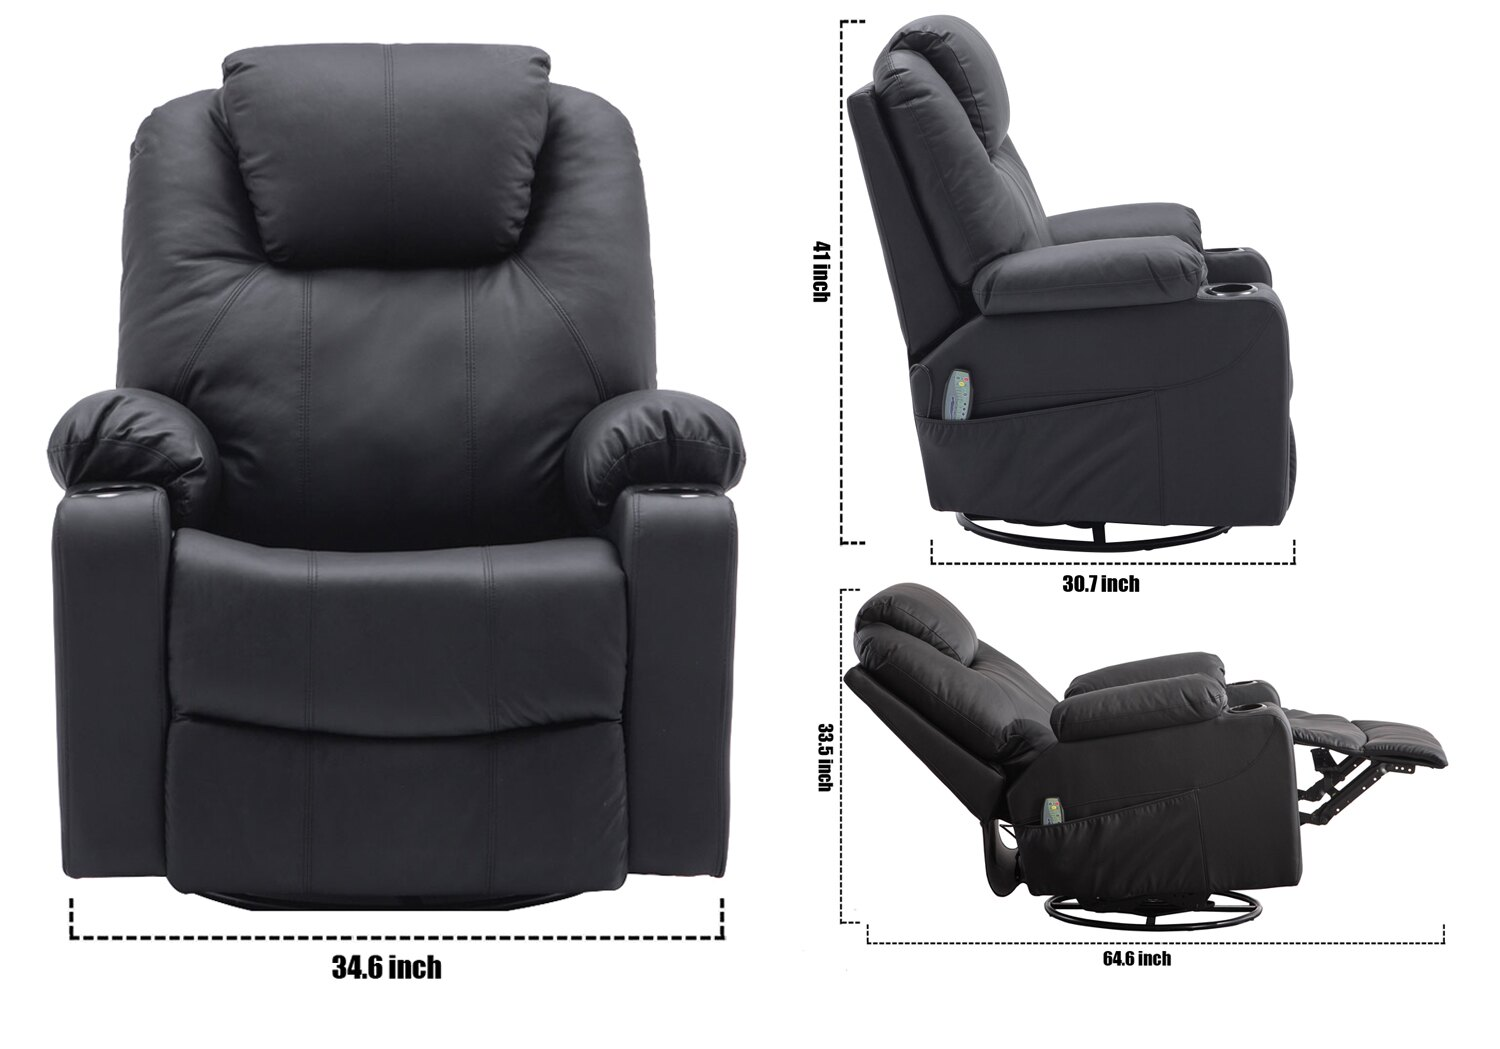 MCombo Electric Massage Sofa PU Leather Recliner Chair Vibrating Heated 360°Swivel Lounge Chair w/ Remote Black 8031 7